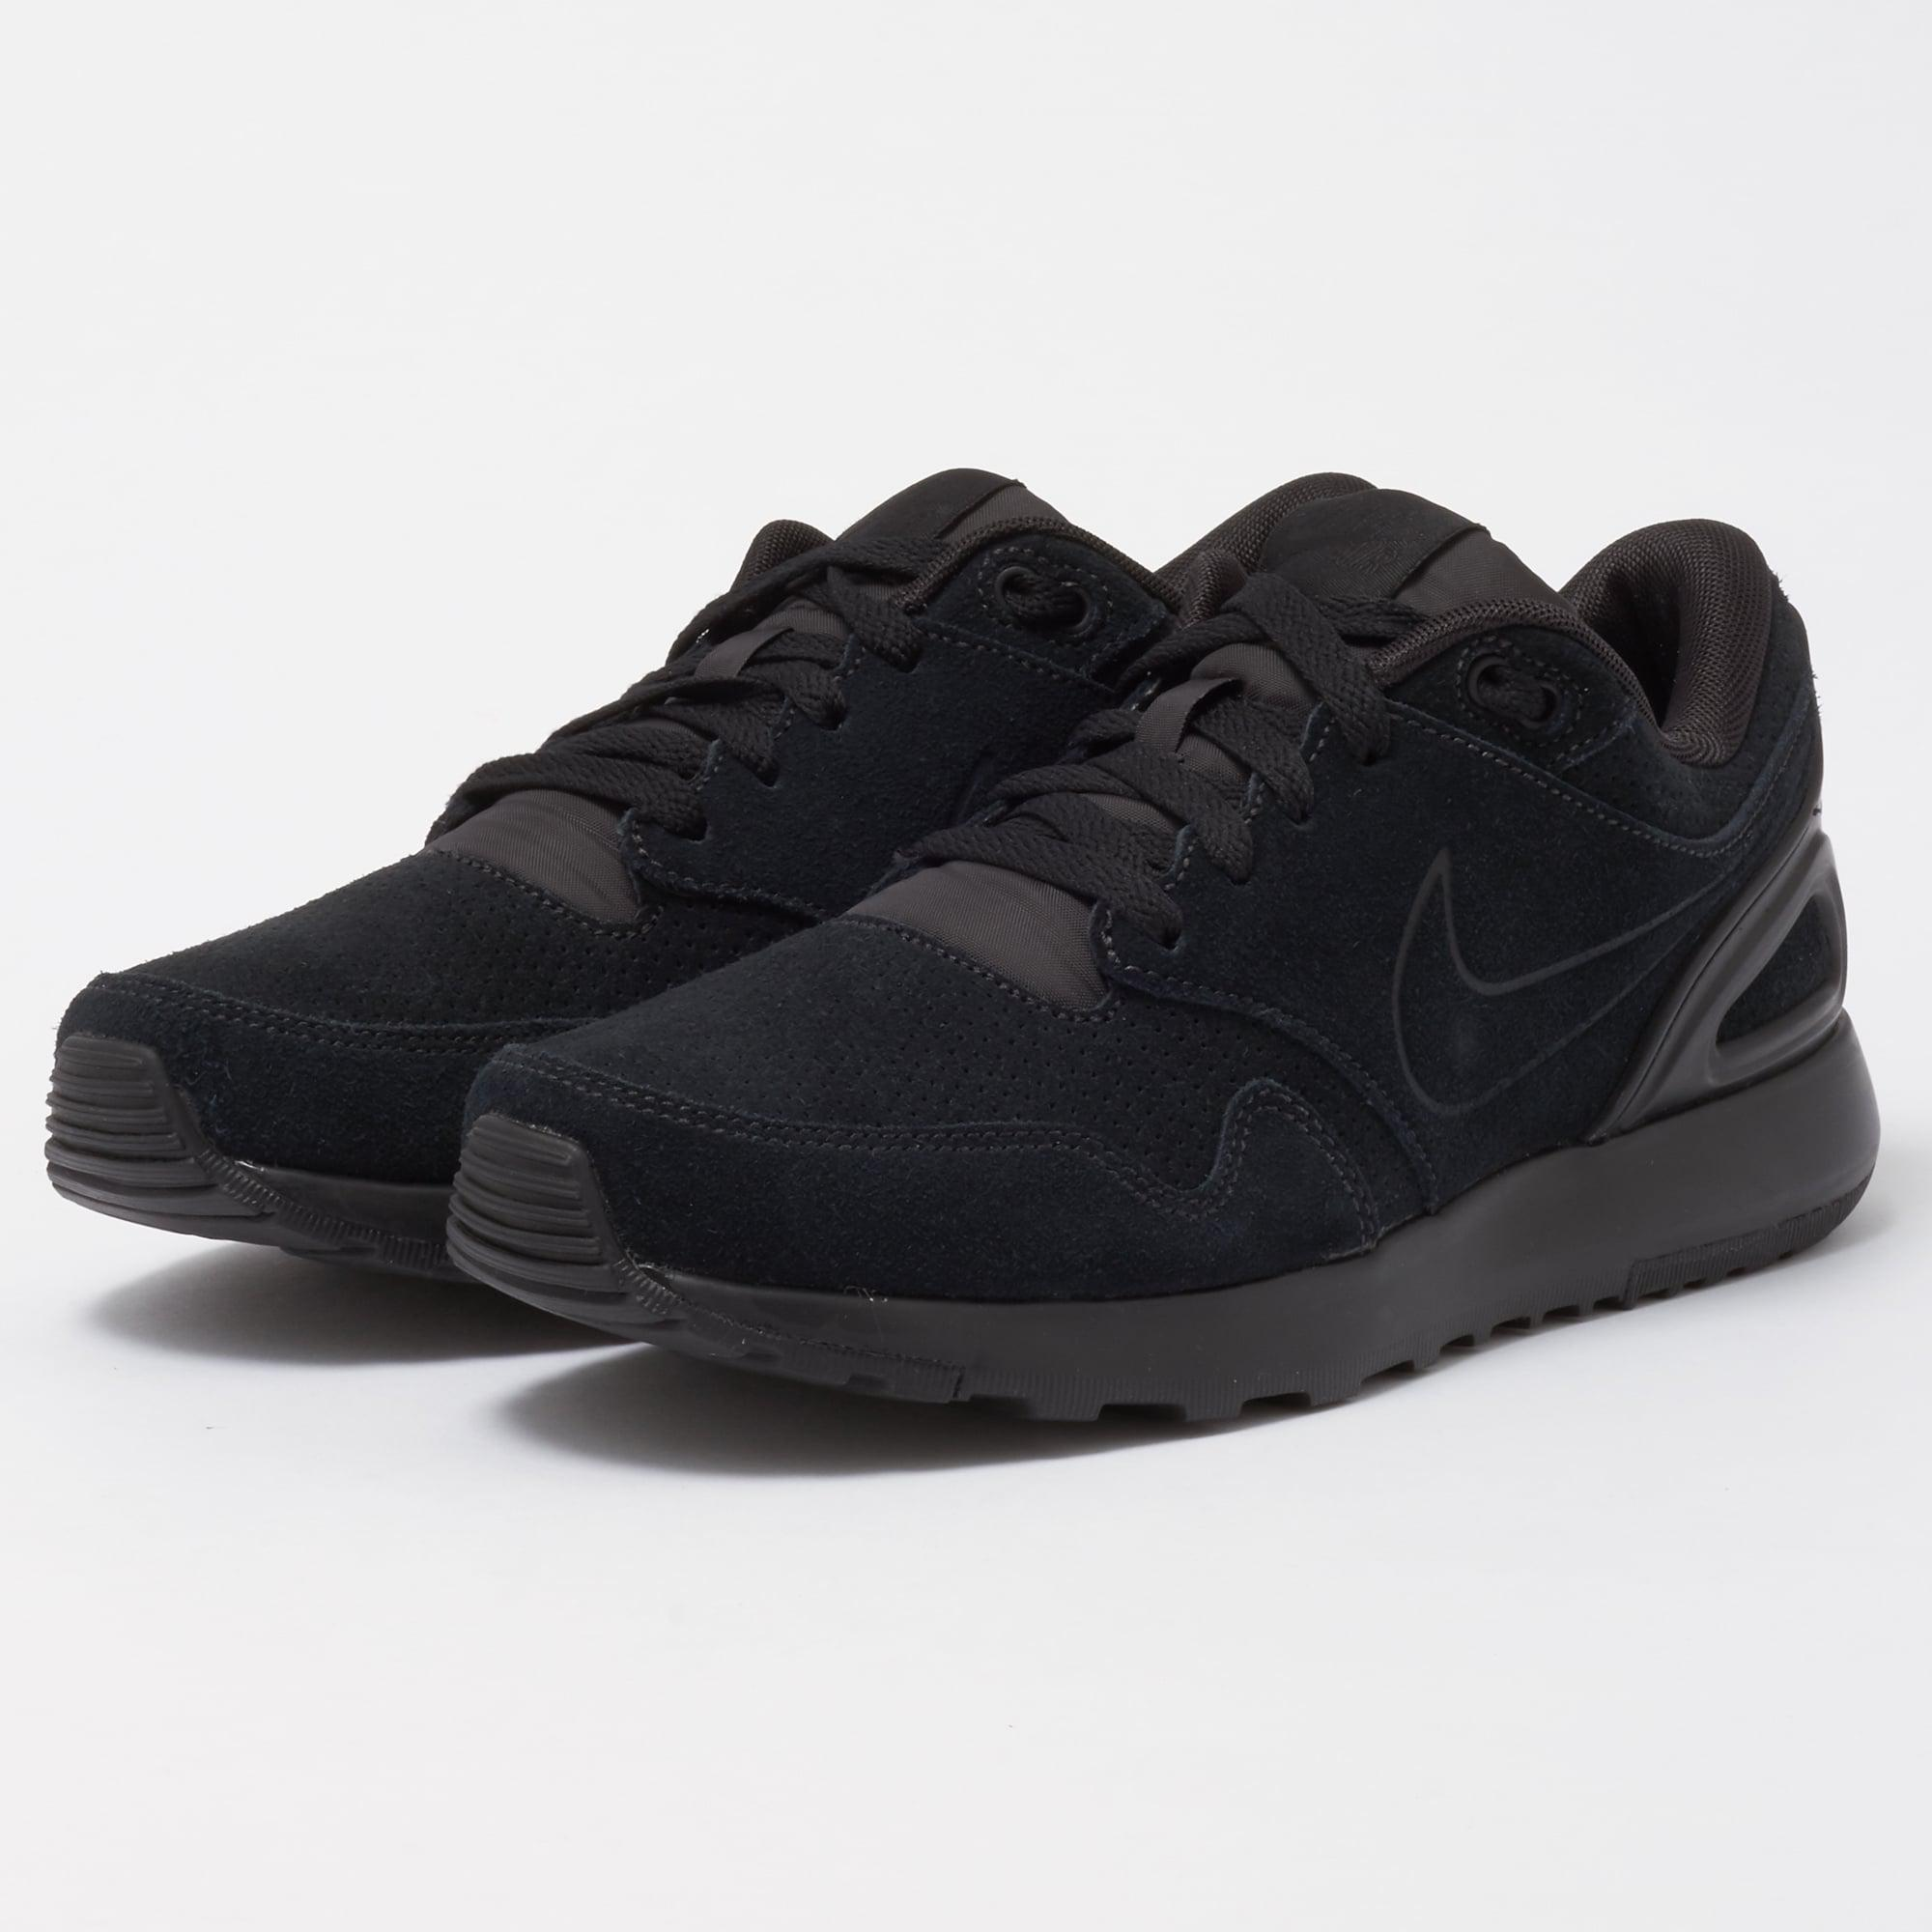 ... low cost lyst nike black air vibenna prm in black afe42 3872e fdc19bb0a